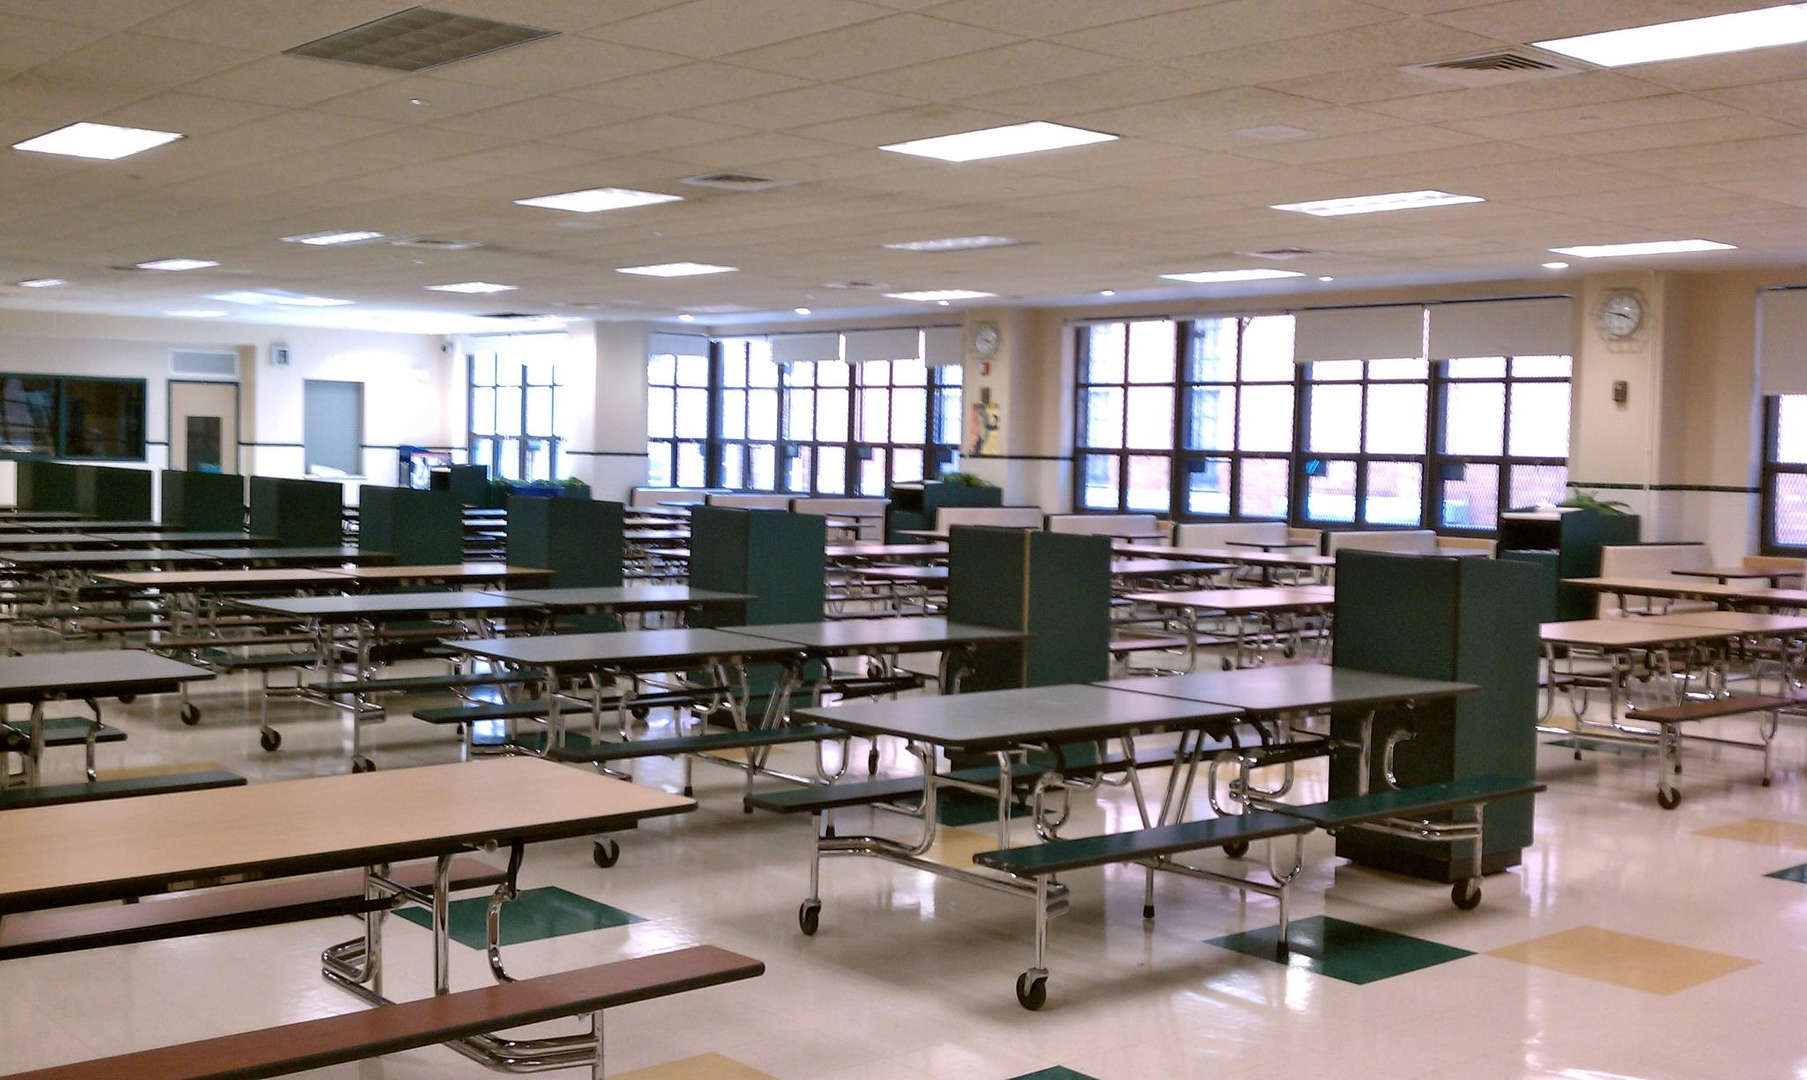 Our school cafeteria